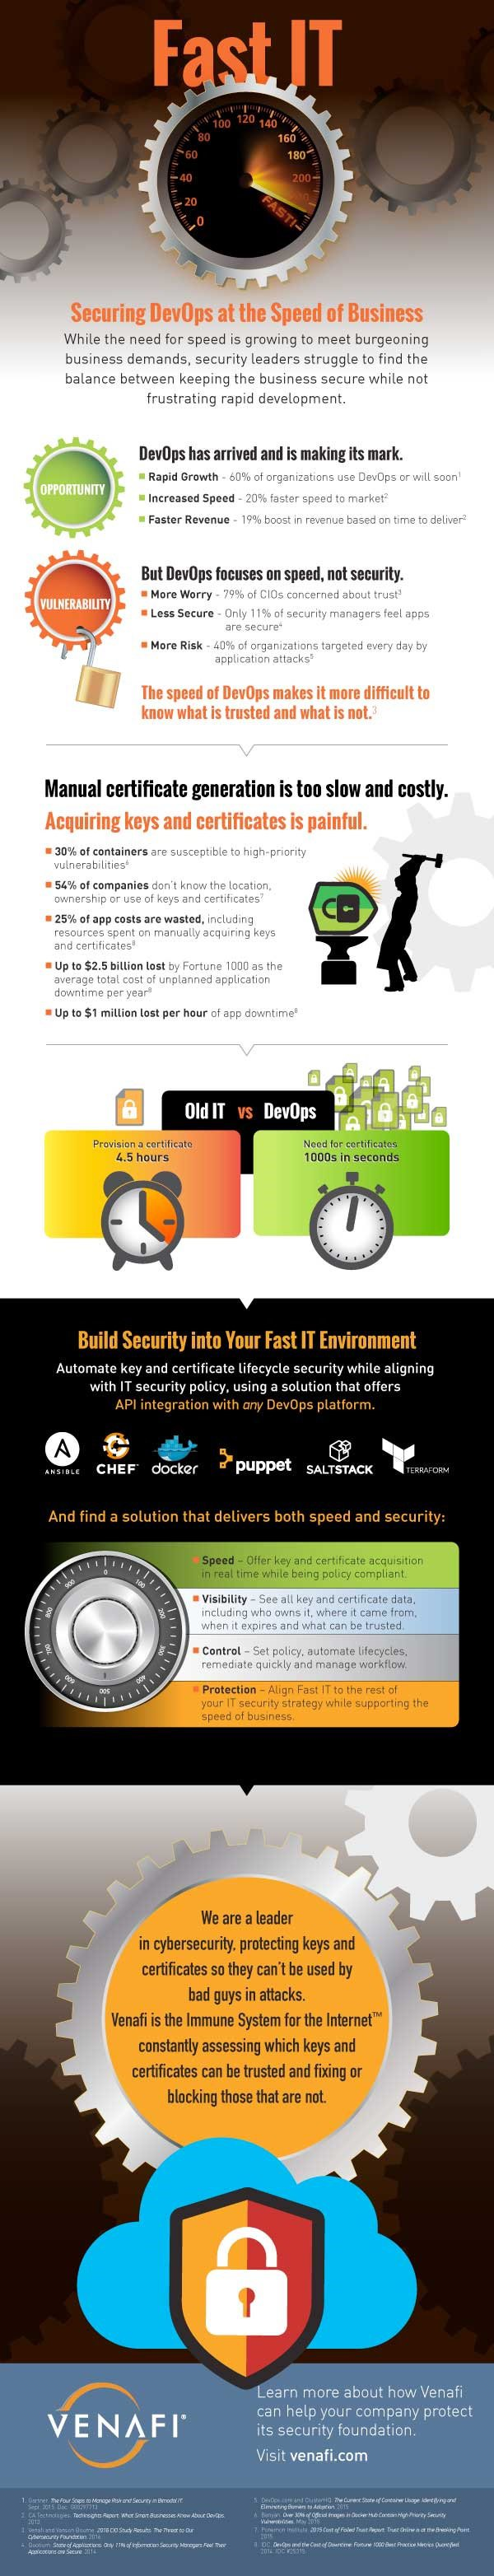 Infographic on Fast IT: Securing DevOps at the Speed of Business